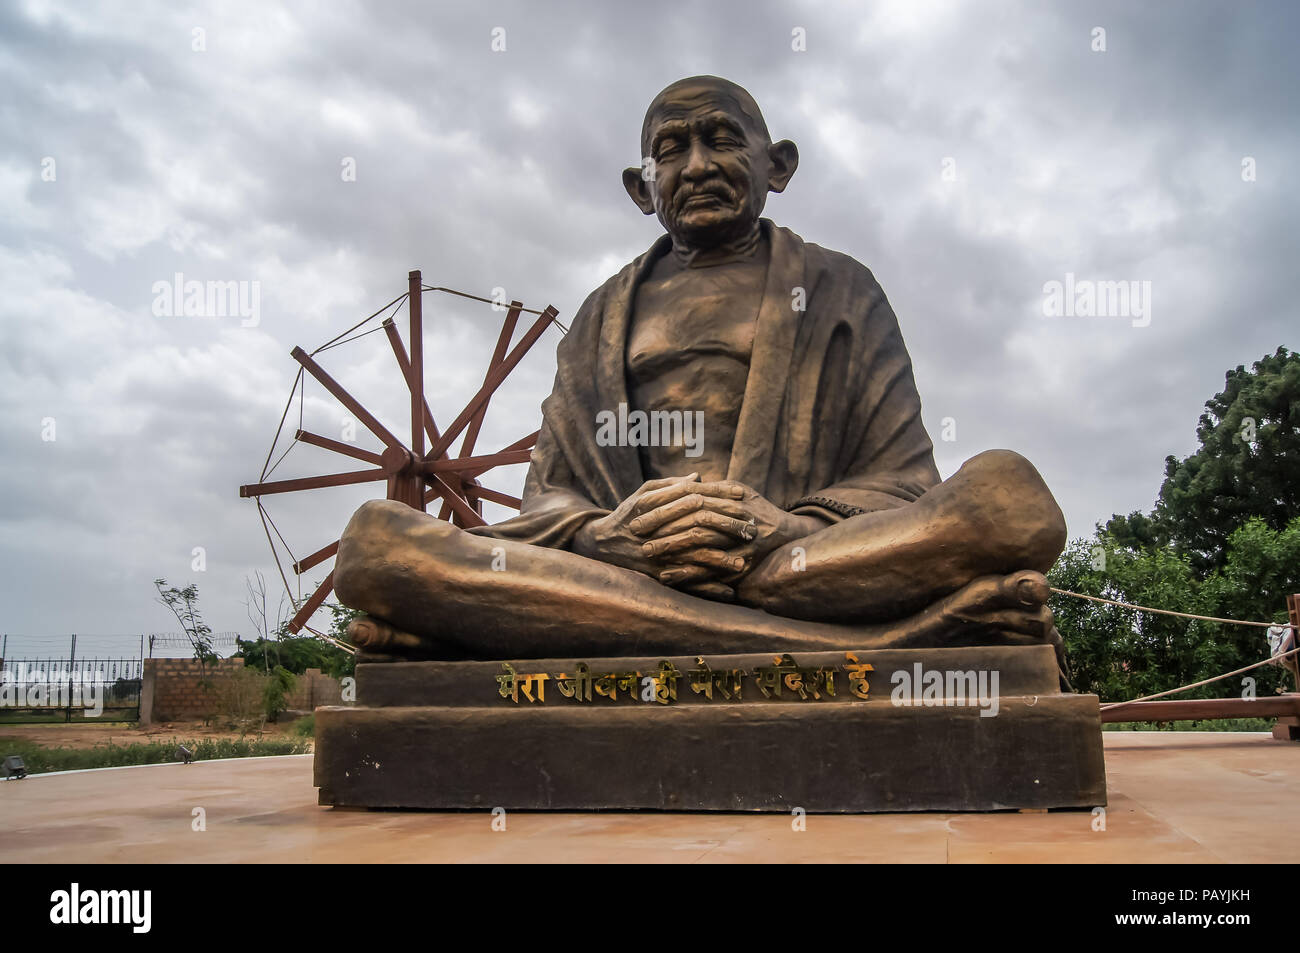 Statue of Mahatma Gandhi in the lawn of the Garden. - Stock Image